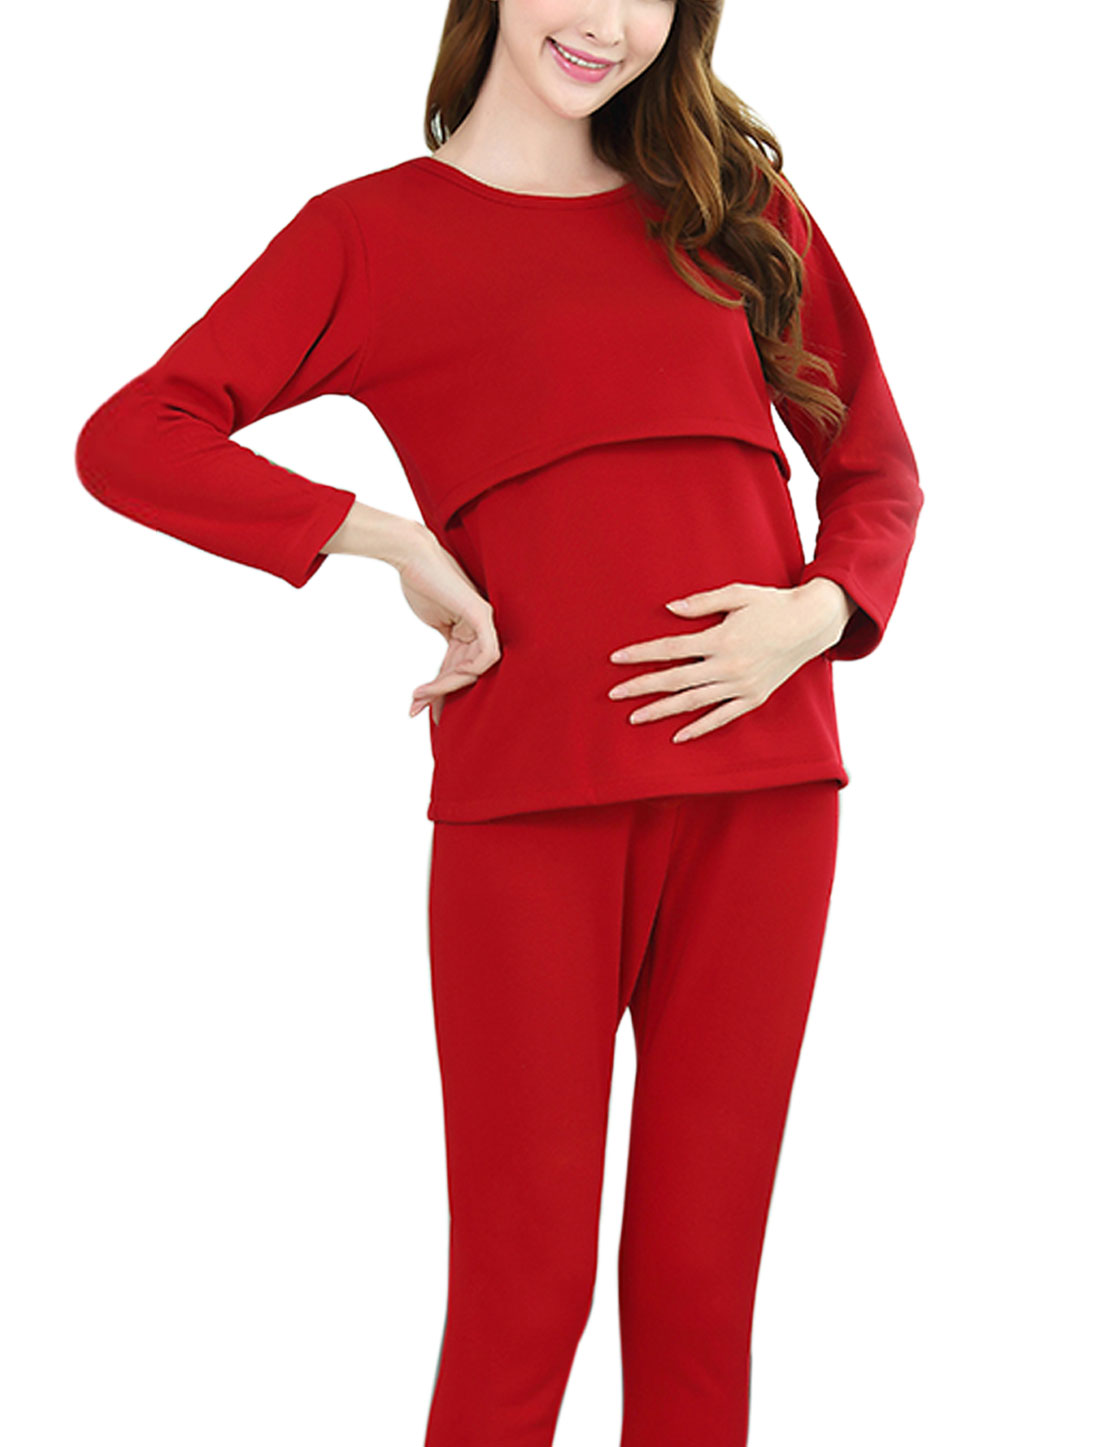 B44 Maternity Slipover Adjustable Drawcord Waist Sleepwear Pajama Sets Red XL/S (US 6)